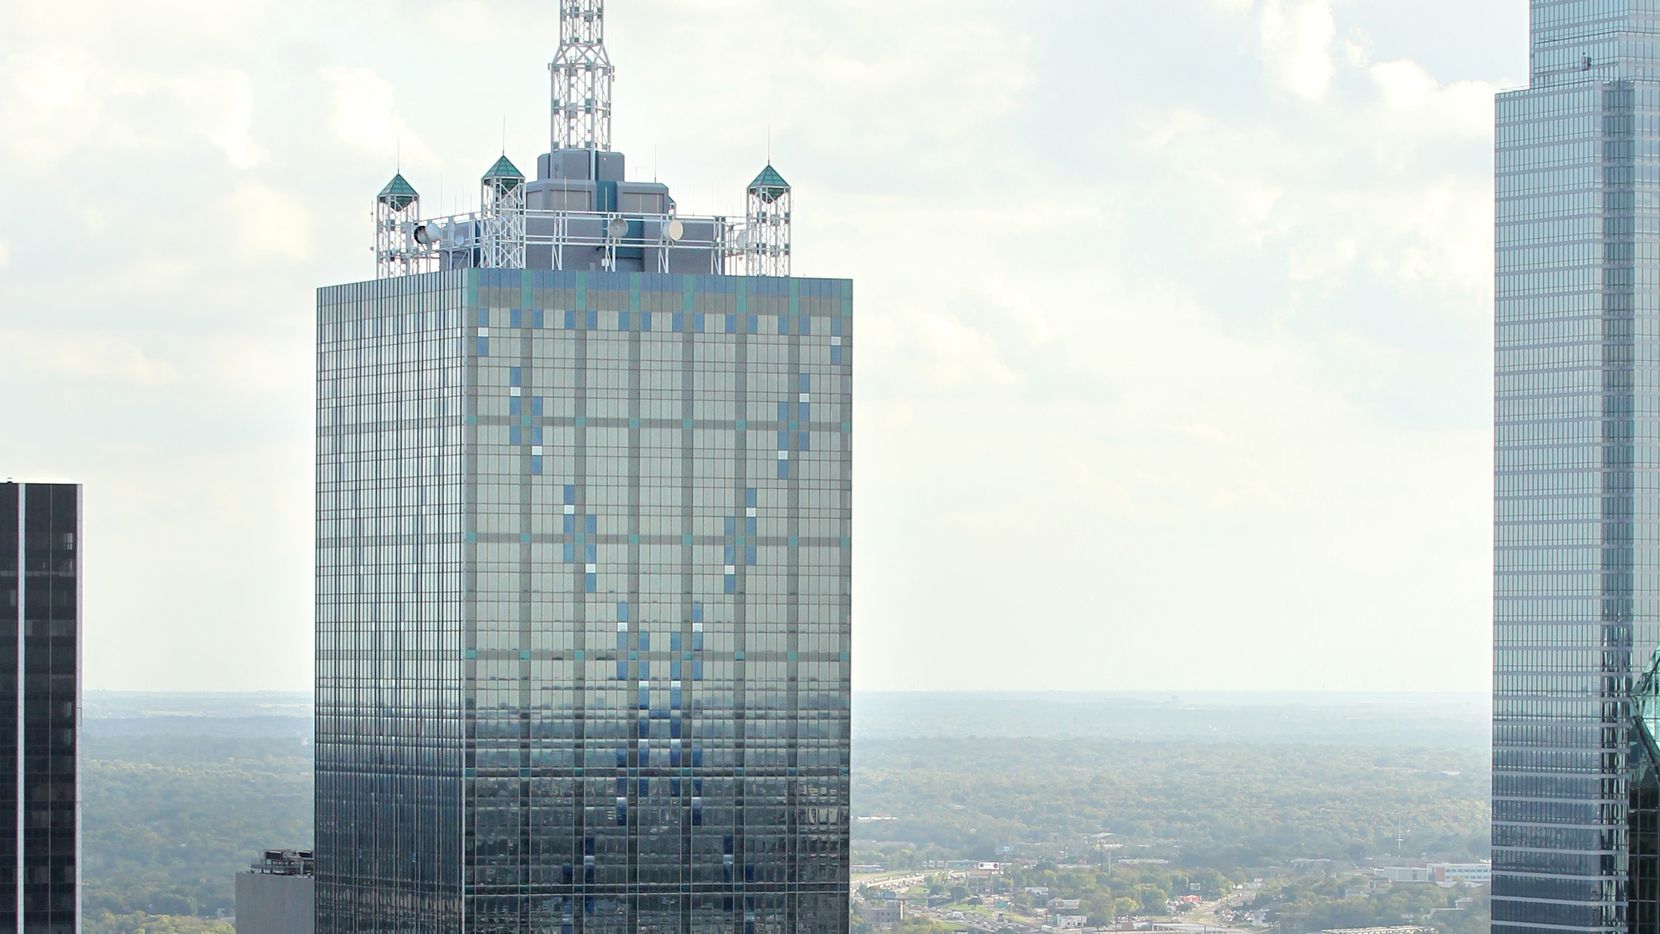 Renaissance Tower on Elm Street was built in 1974 and remodeled in the 1980s.